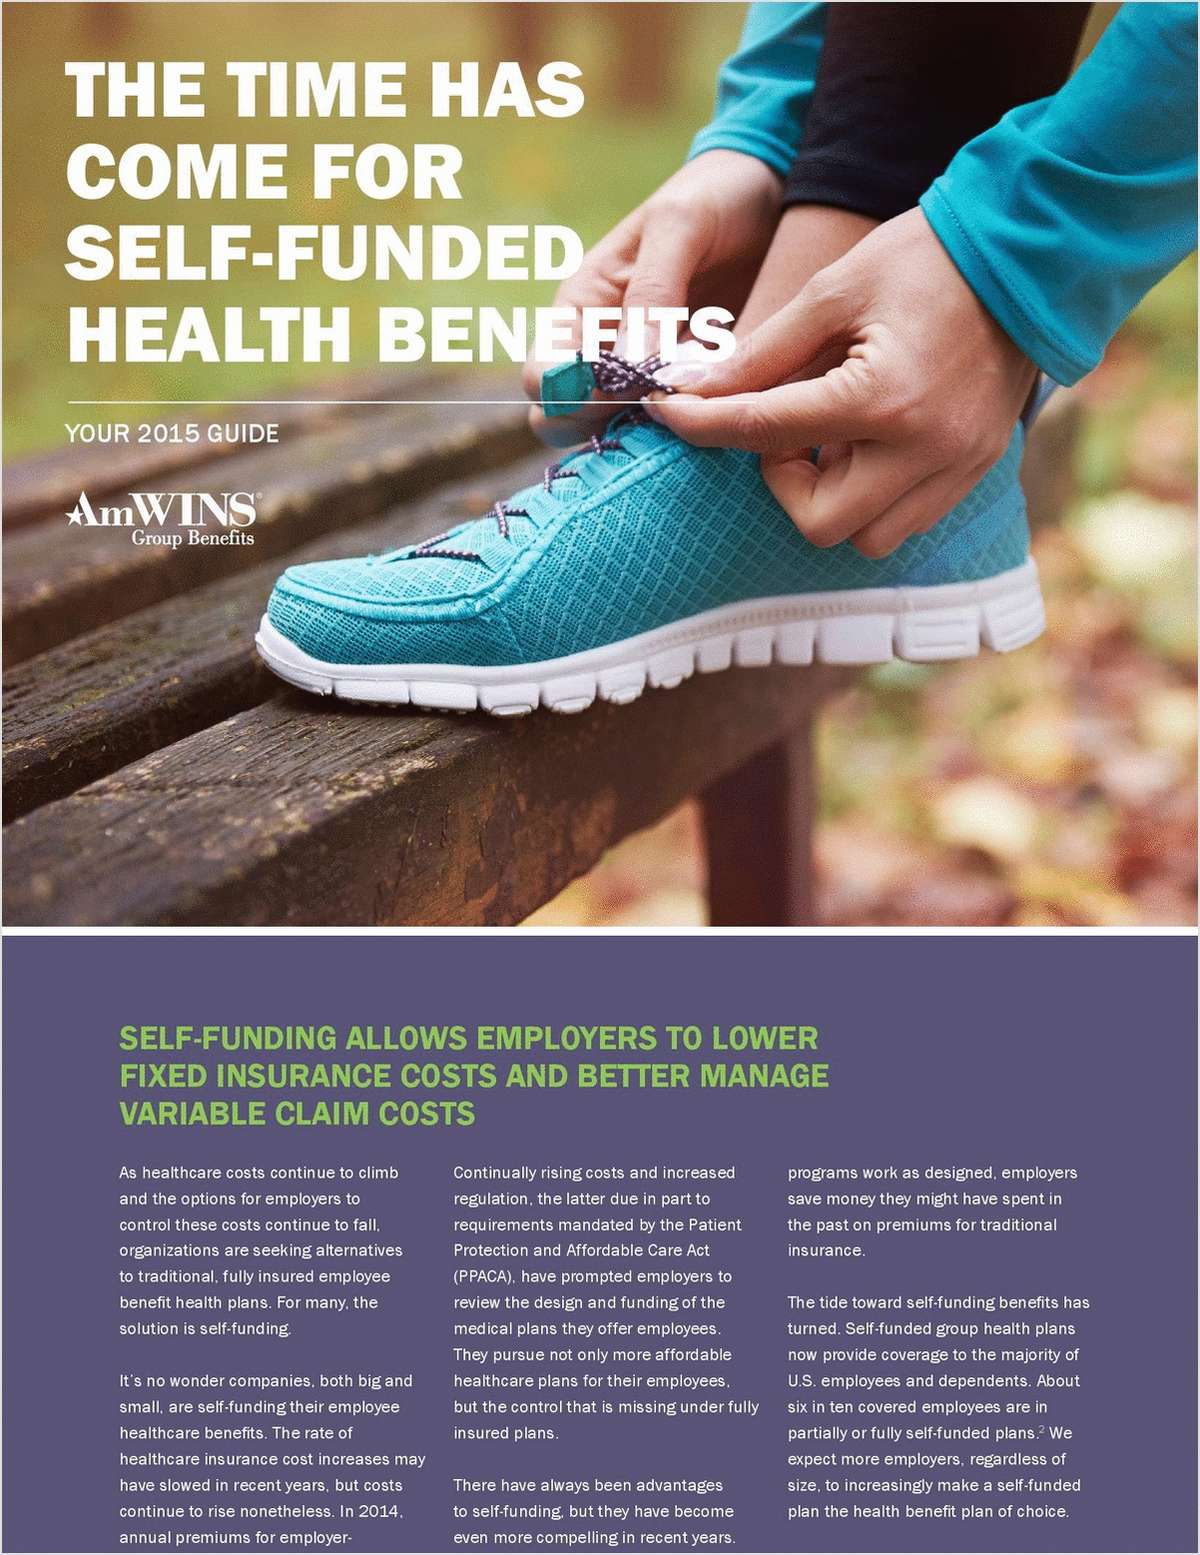 The Time Has Come for Self-Funded Health Benefits